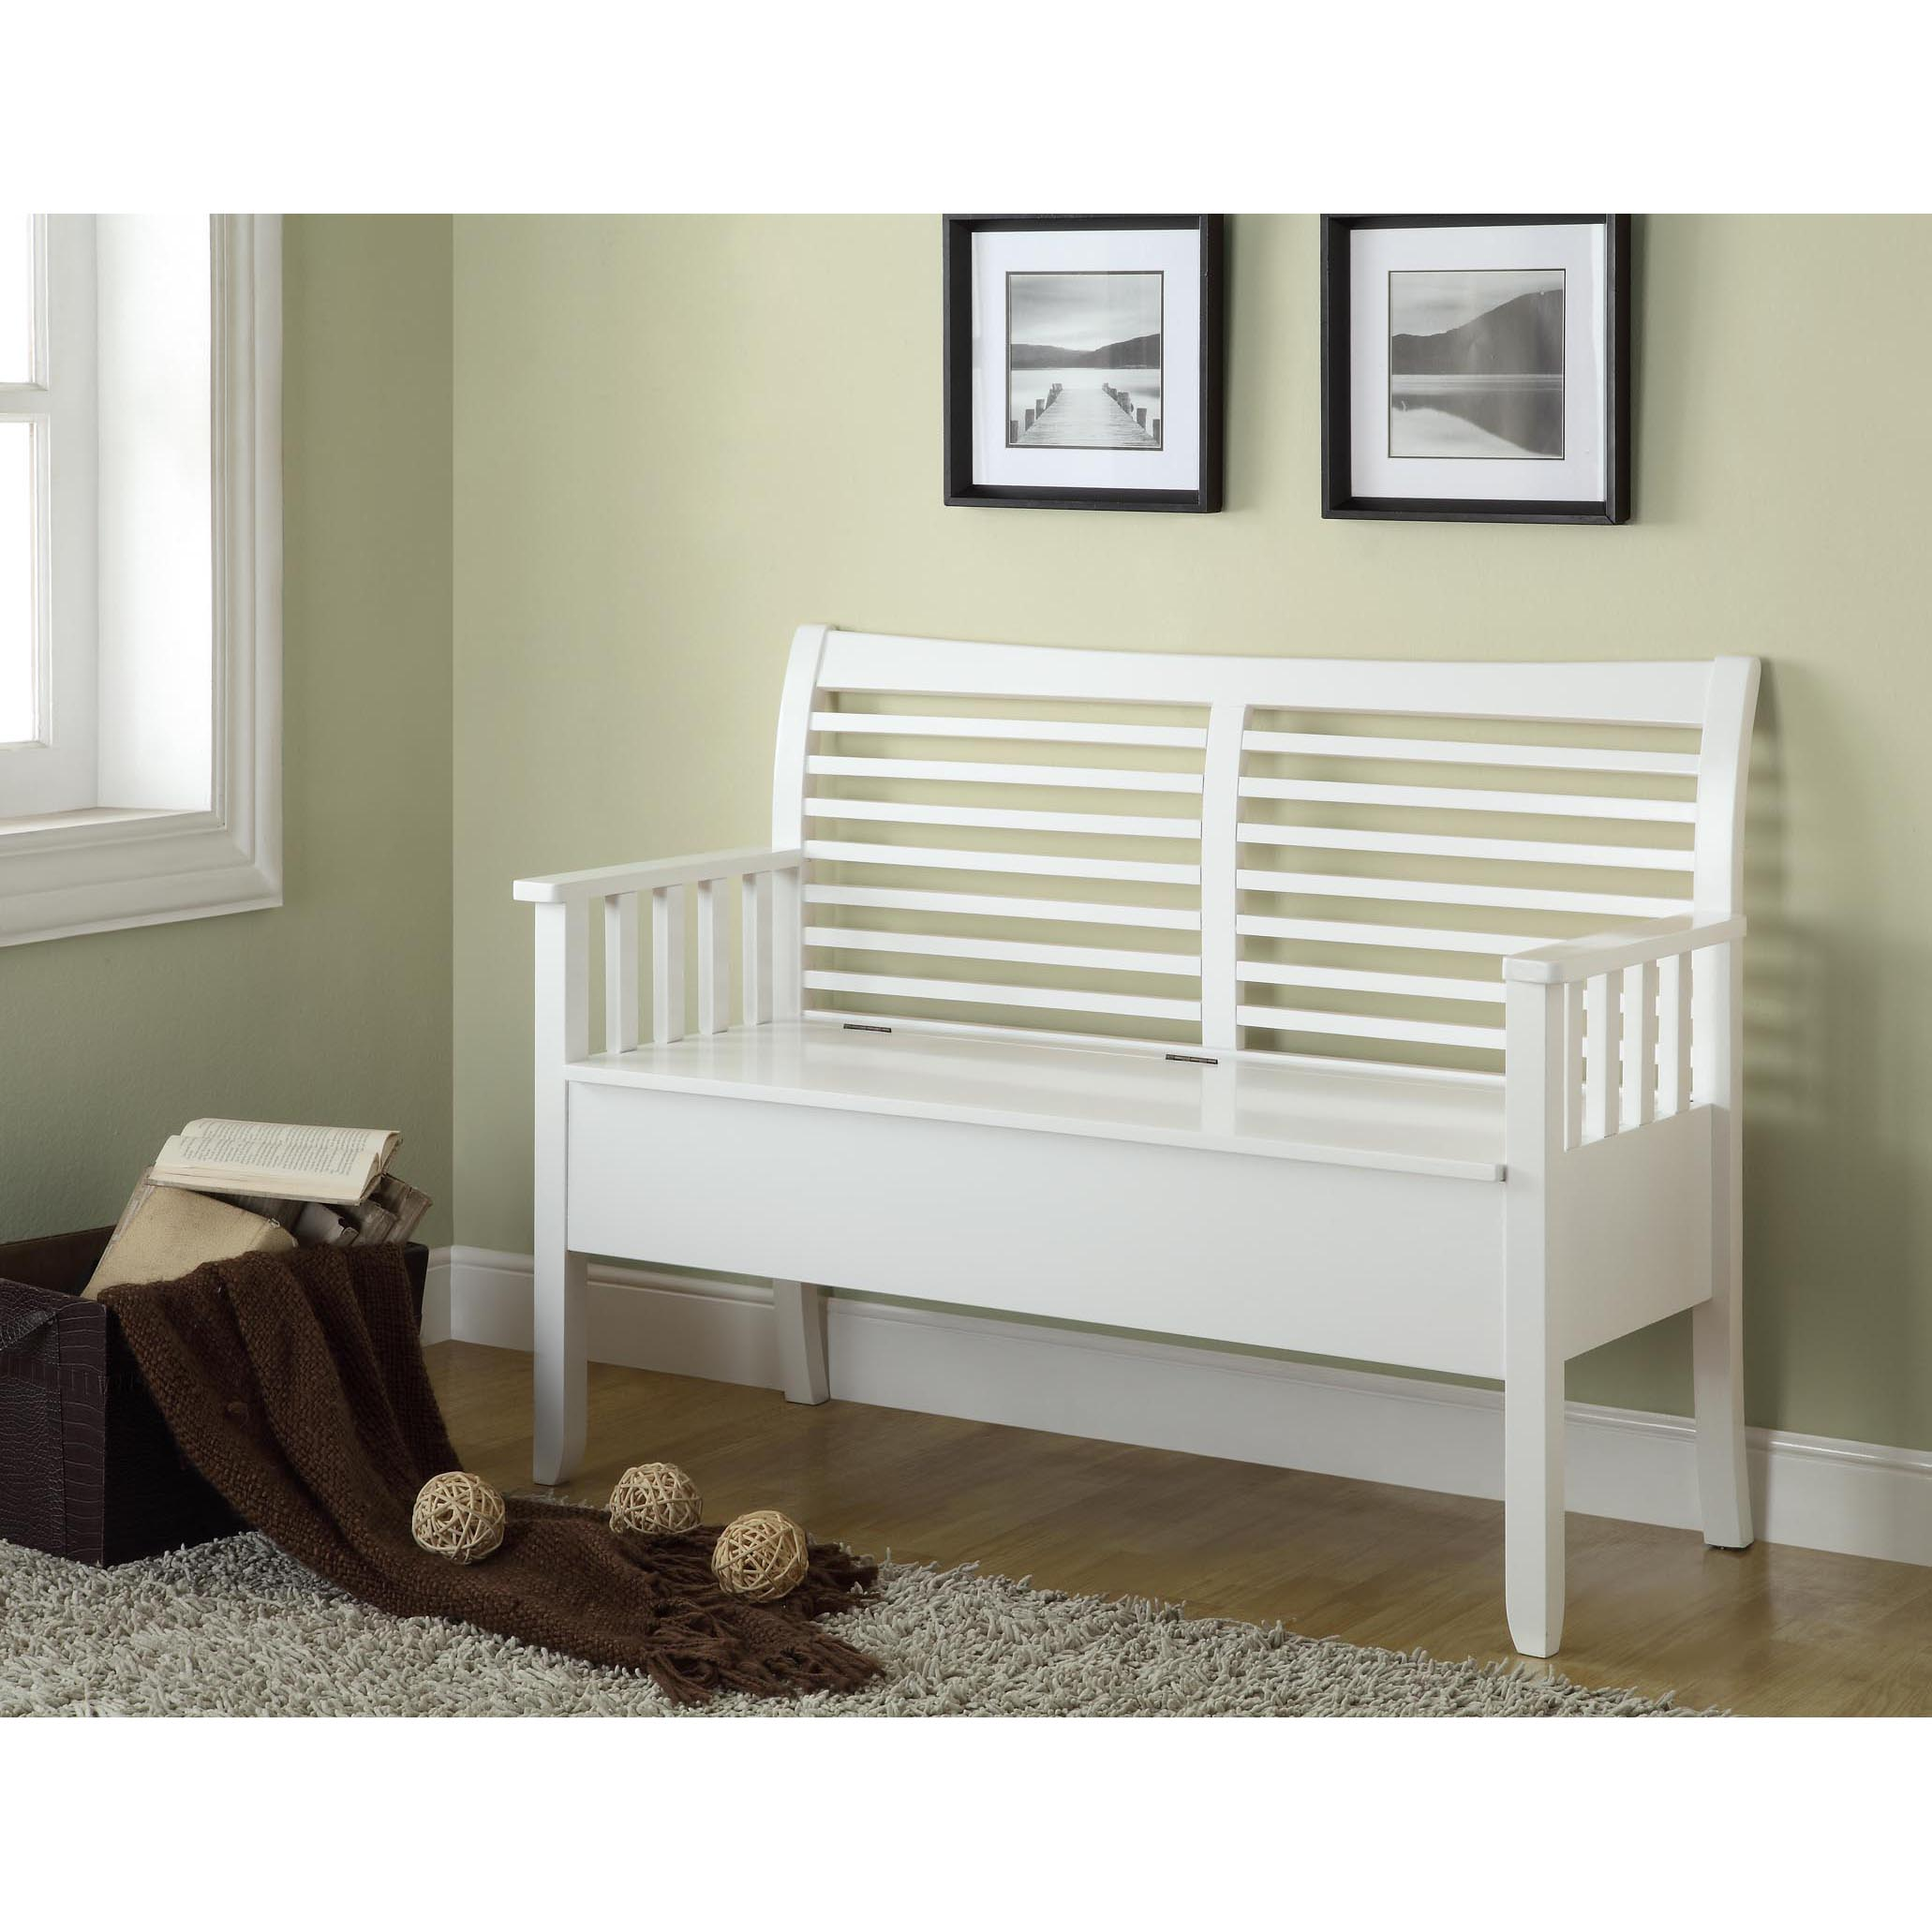 White Solid Wood Bench With Storage Top And Vertical Slats In Arms Free Shipping Today